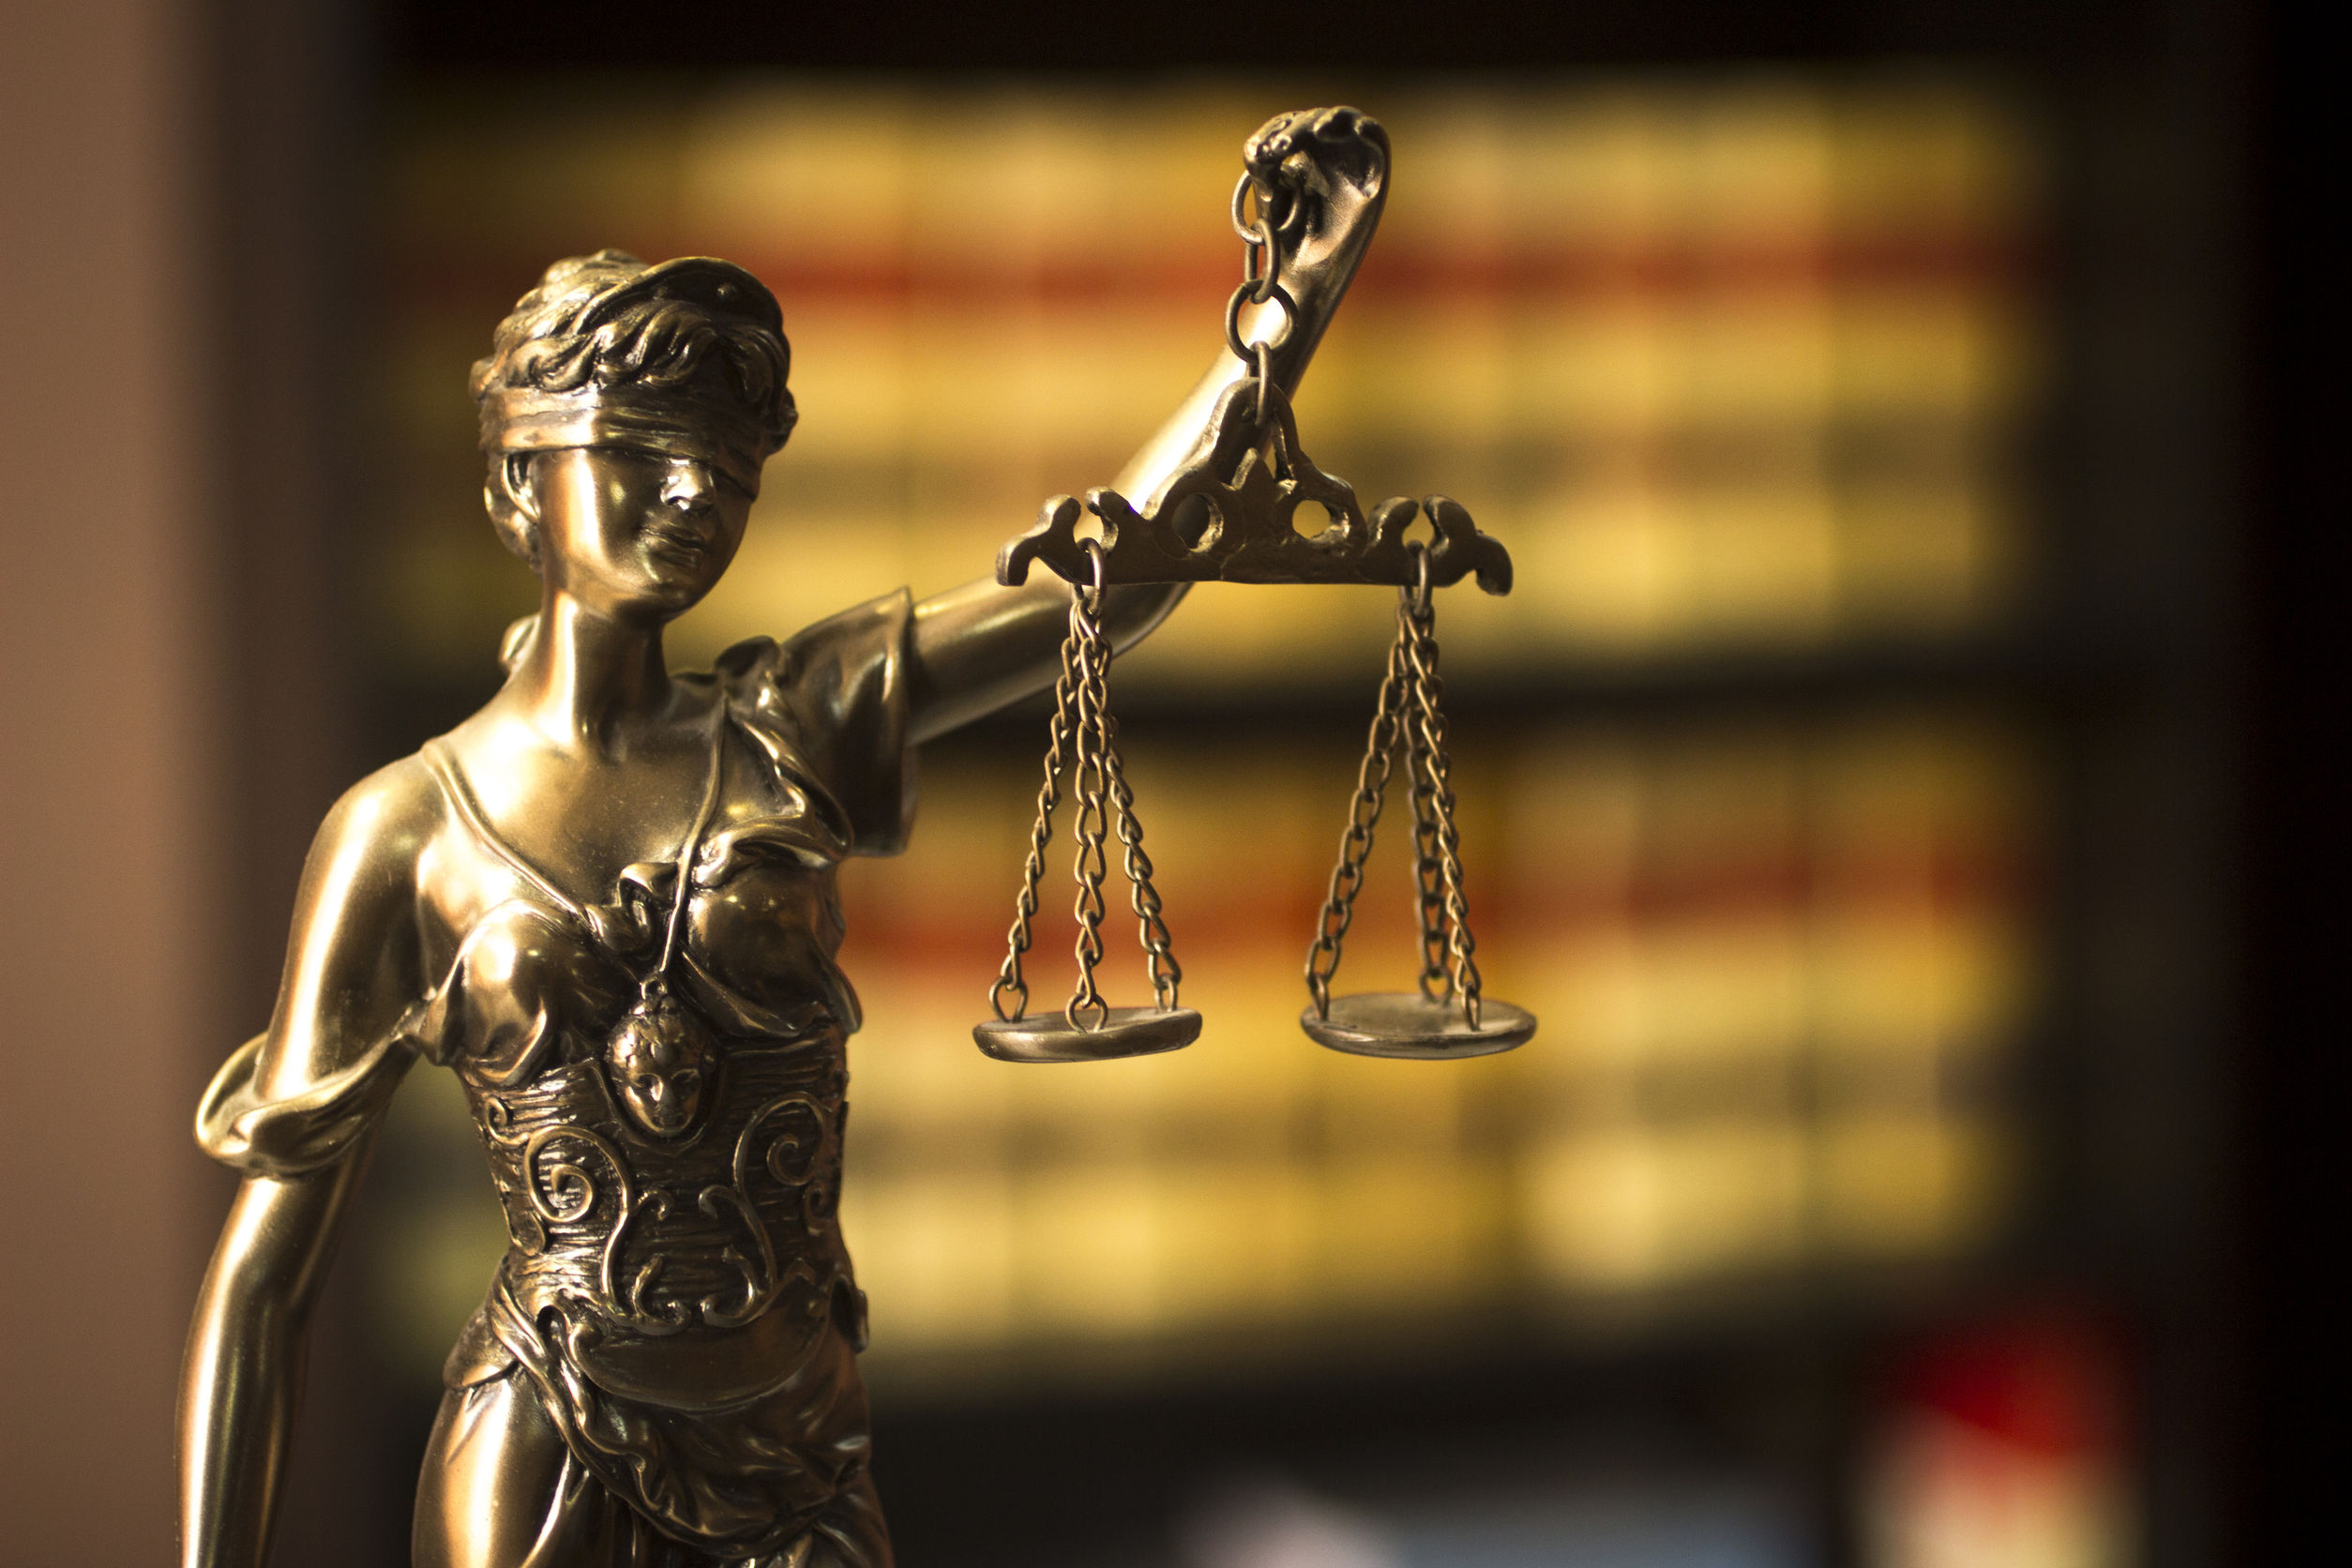 Barristers' Negligence